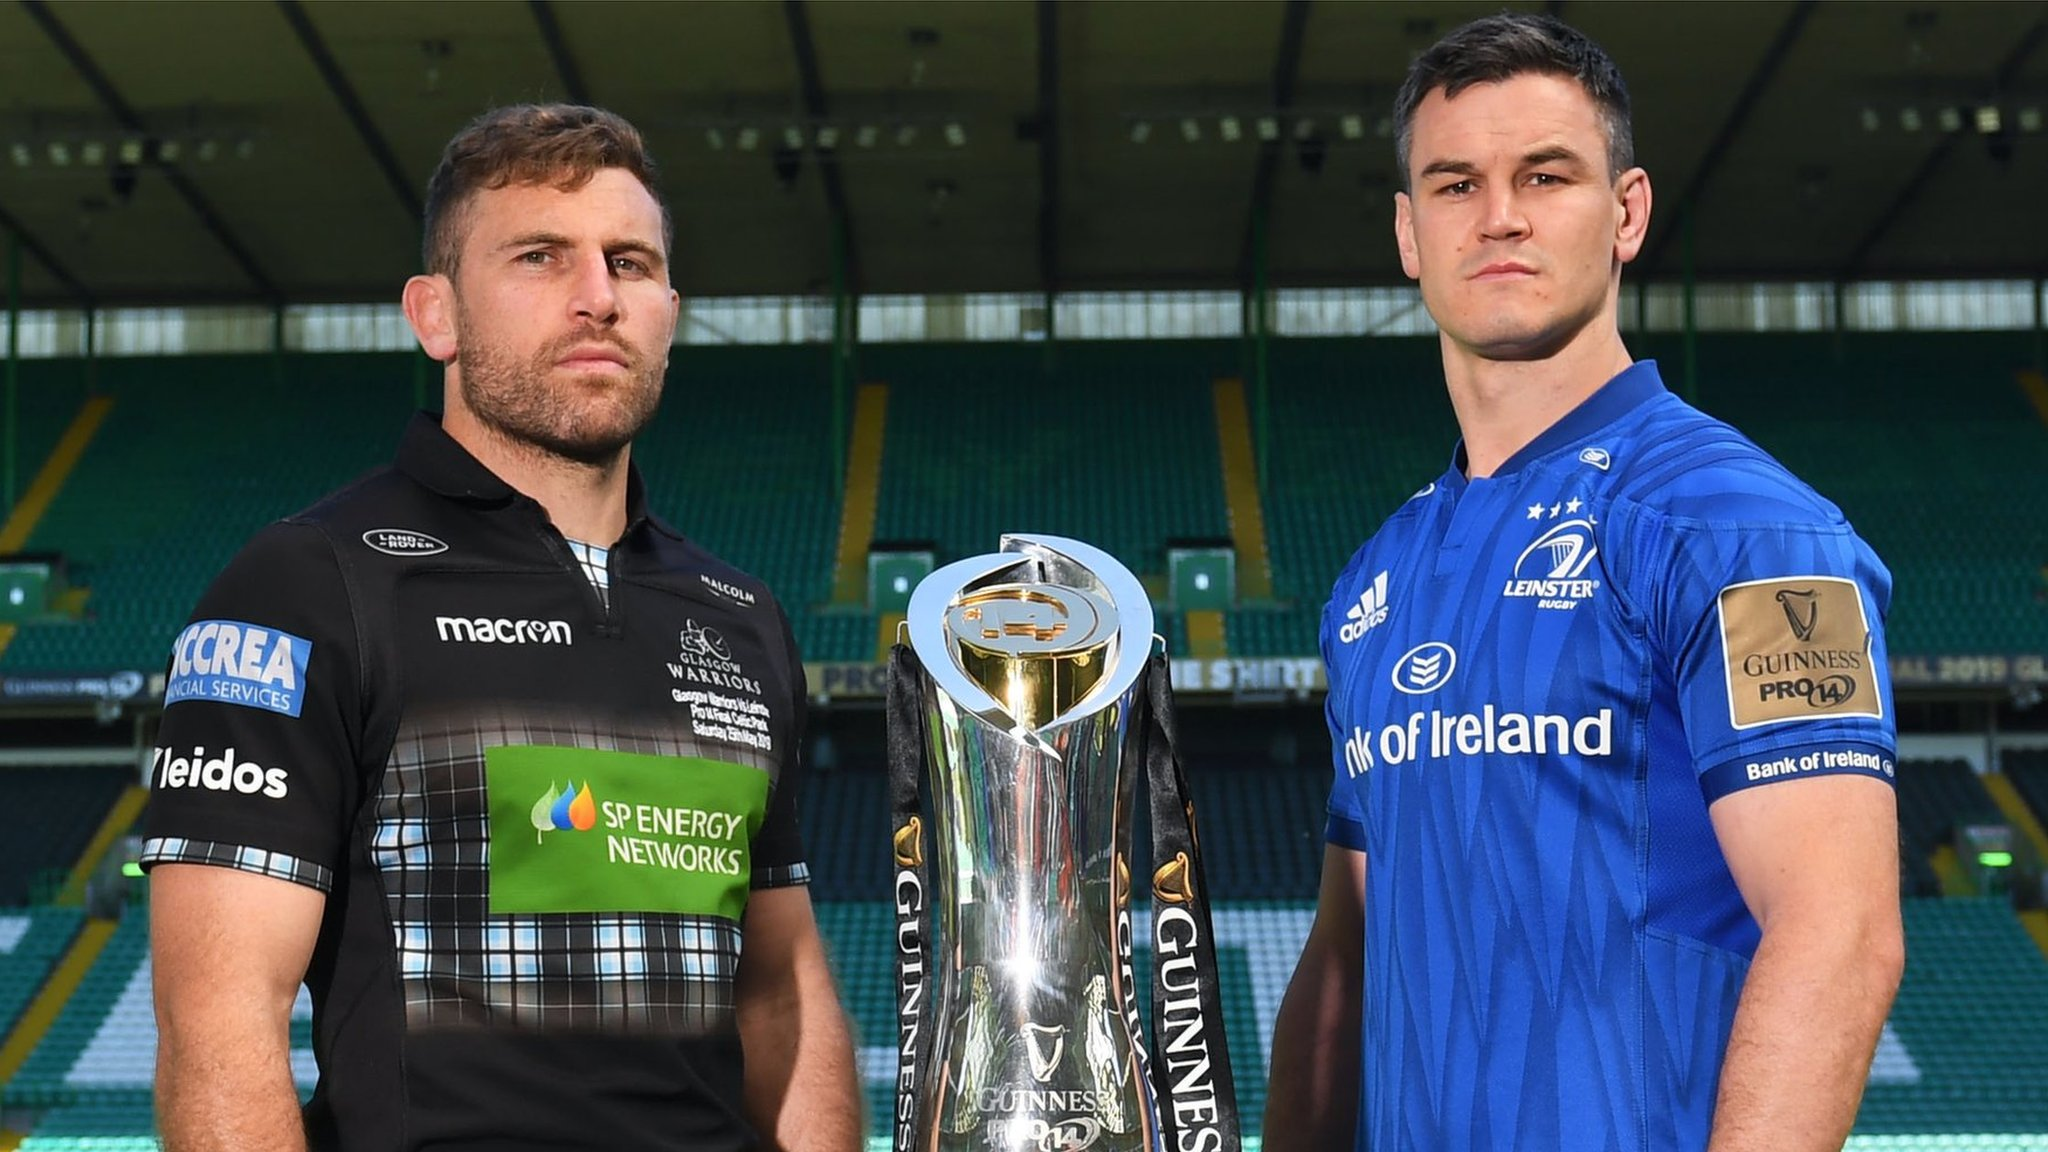 Pro14 final: Glasgow Warriors v Leinster (Sat)